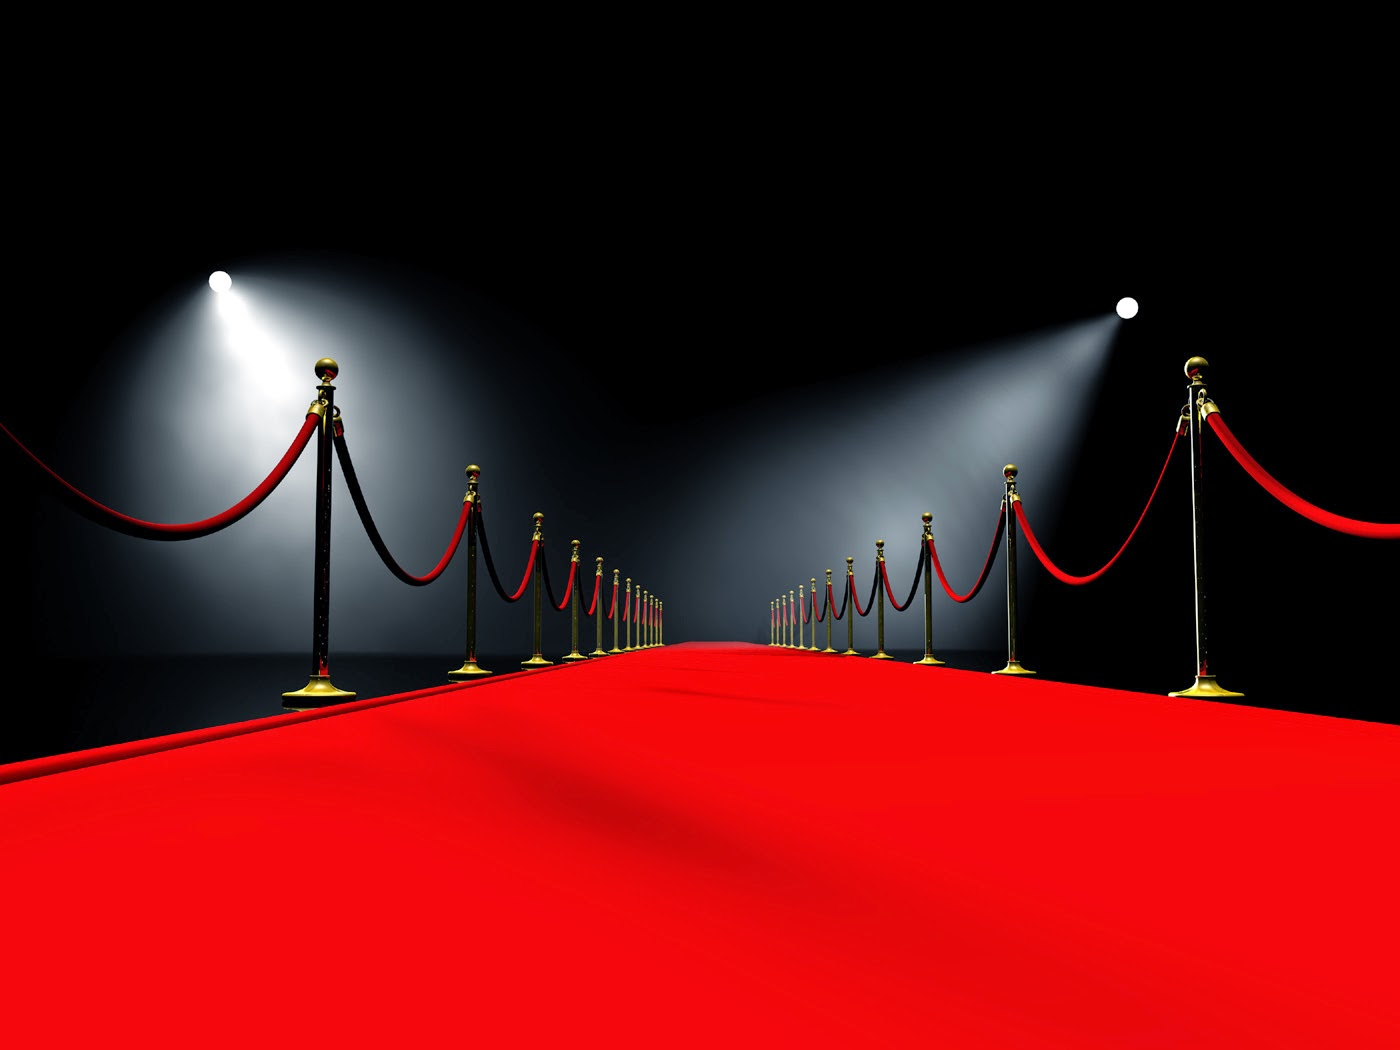 desktop wallpaper red carpet